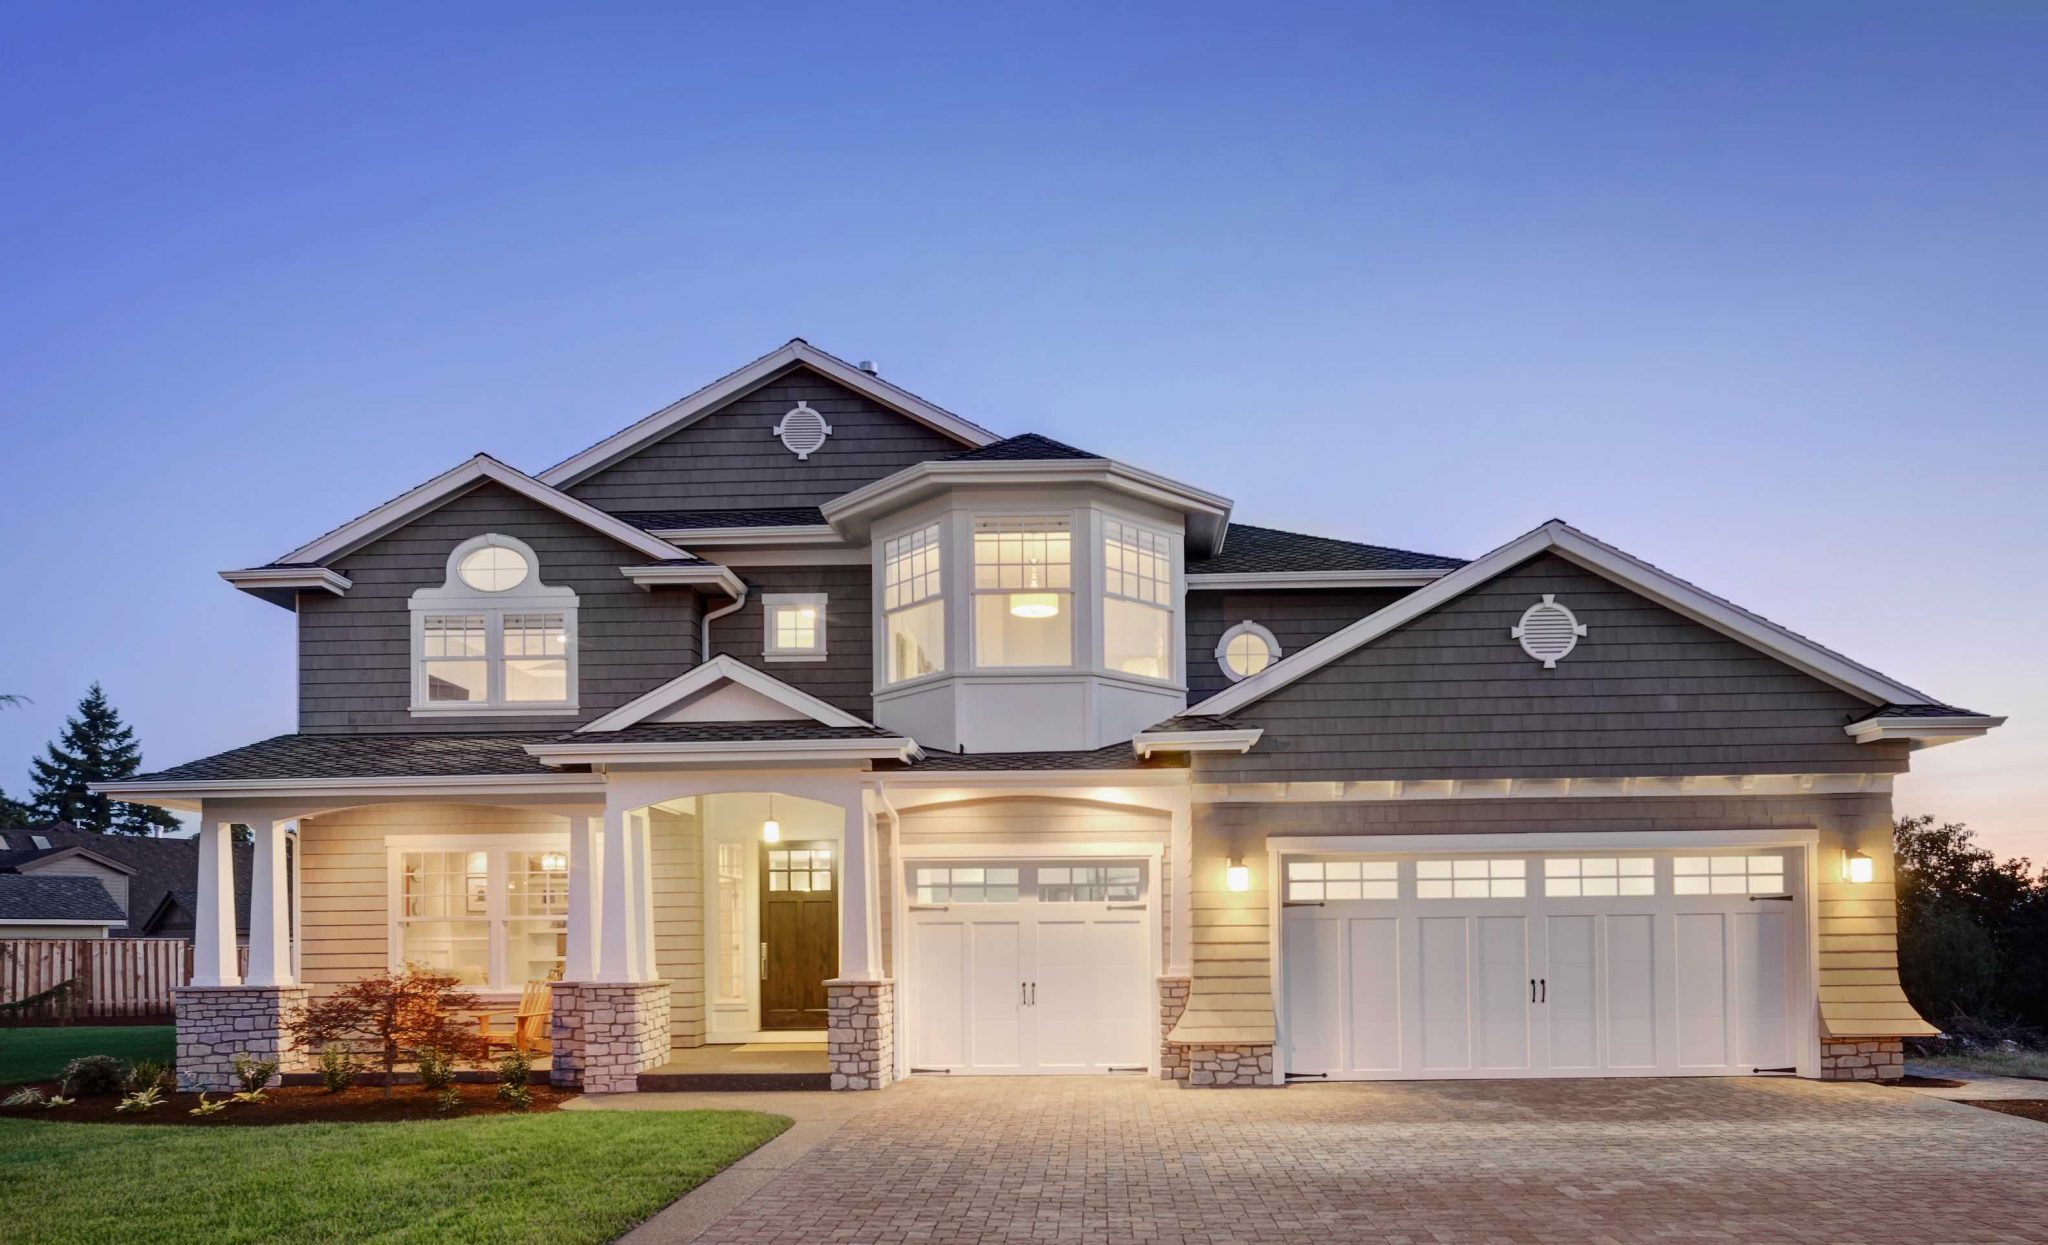 Nanaimo Garage Doors Repair Service Resale Value Curb Appeal Alpha Doors